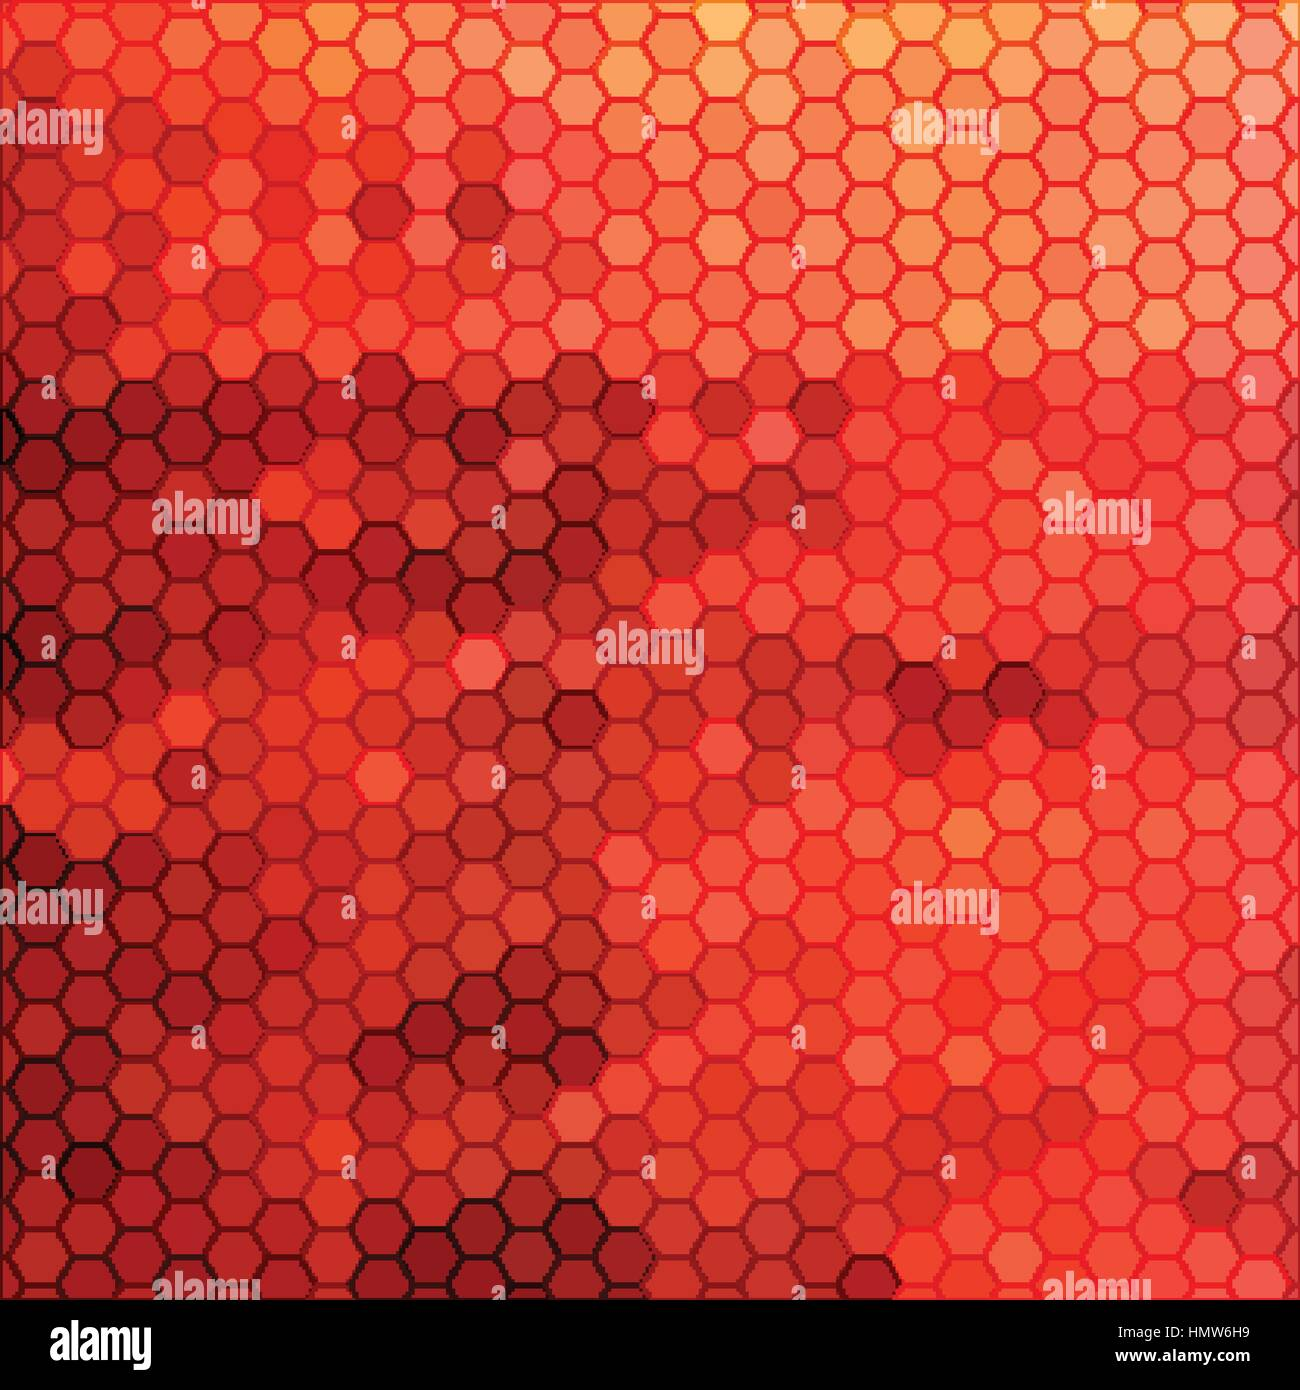 abstract geometric hexagon background - Stock Image